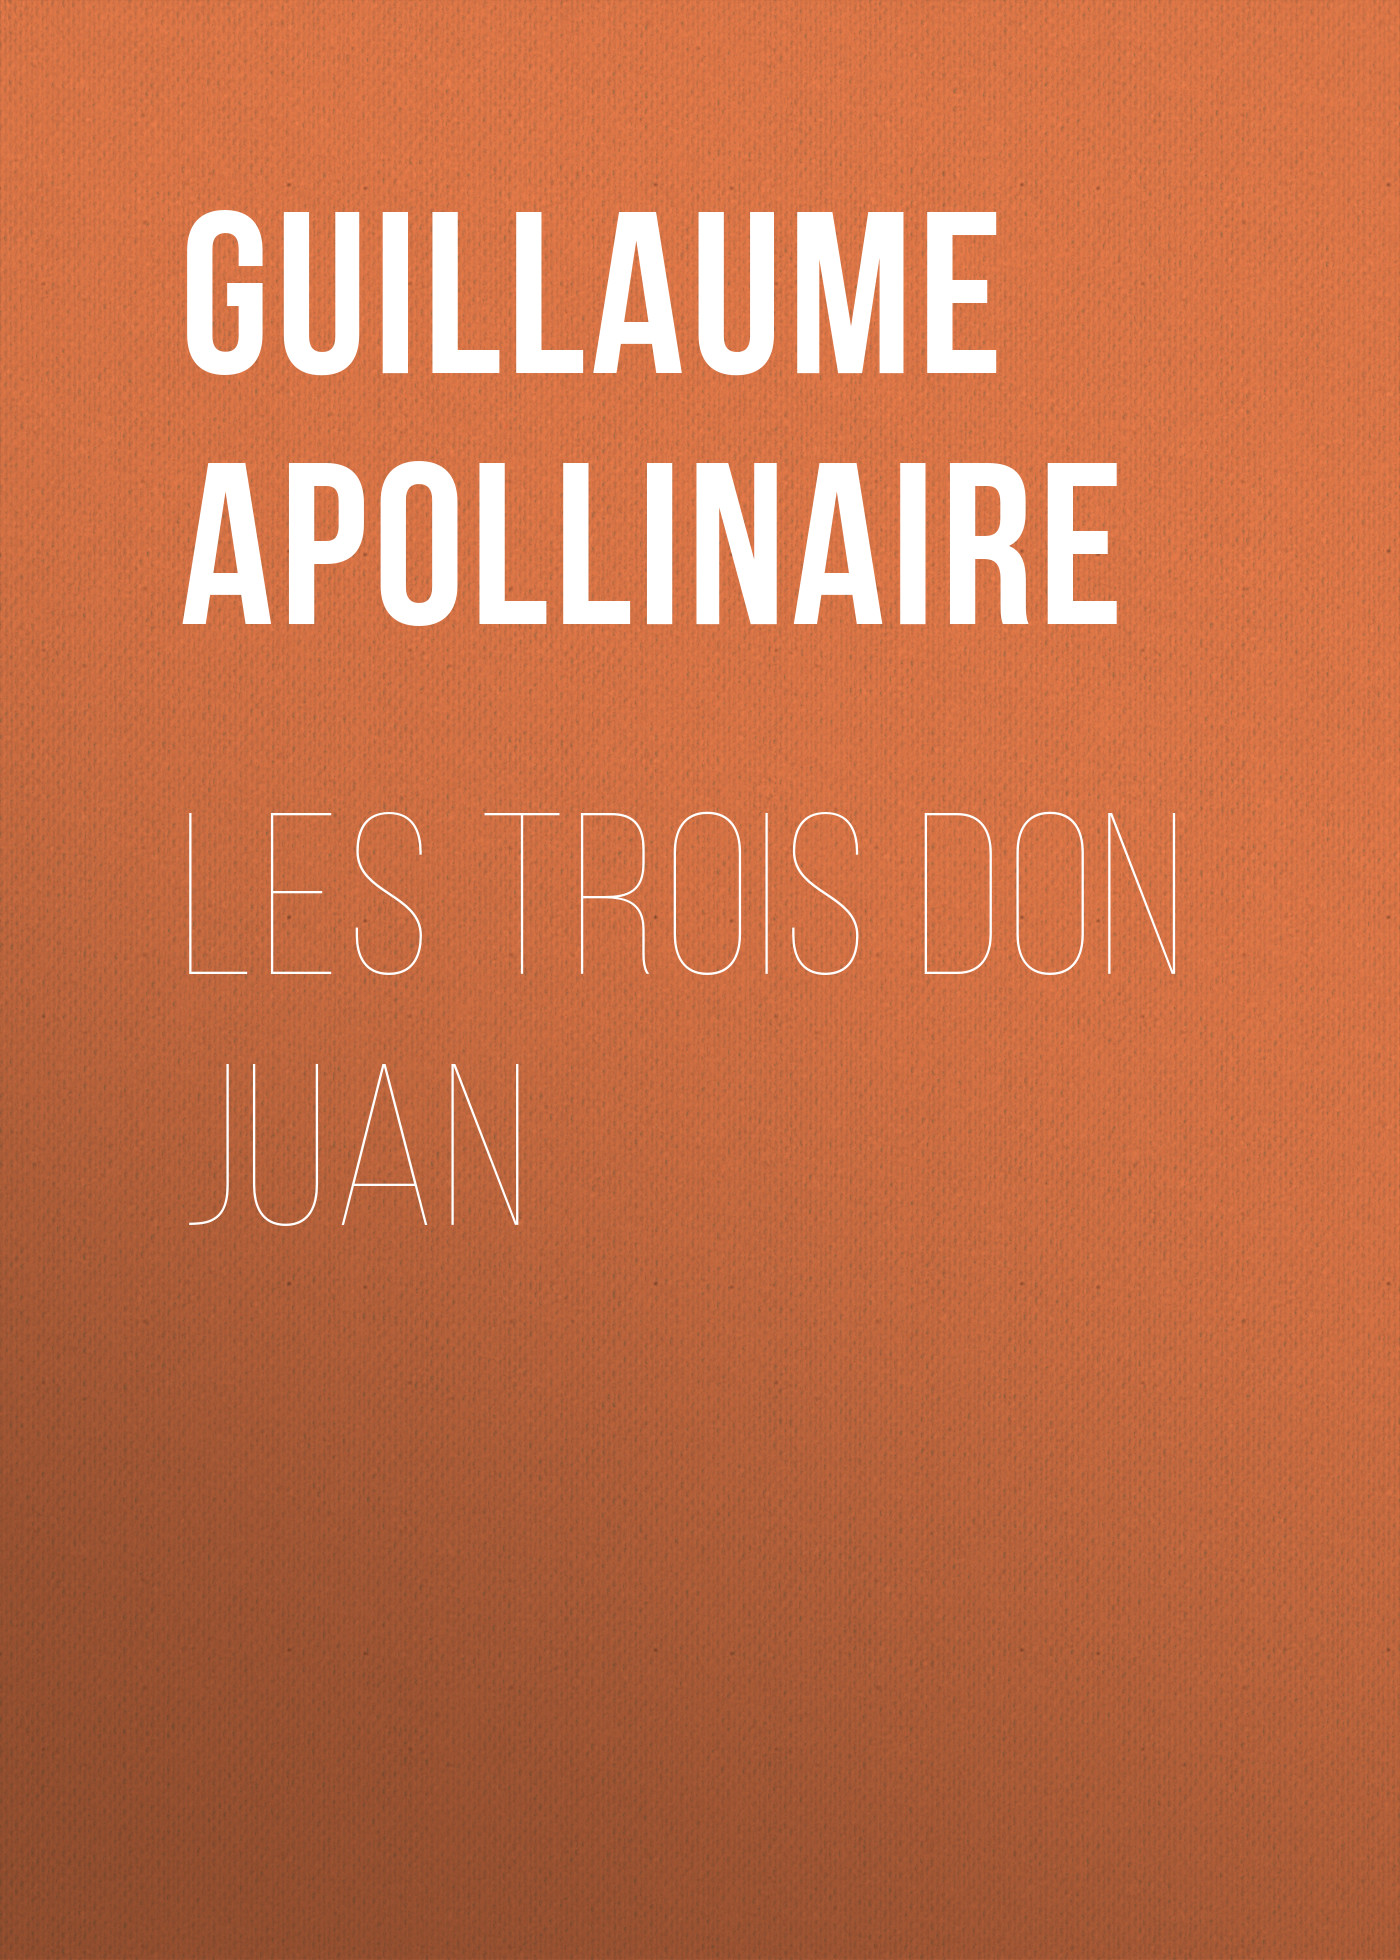 Guillaume Apollinaire Les trois Don Juan vlad ber happy mike and the new don juan